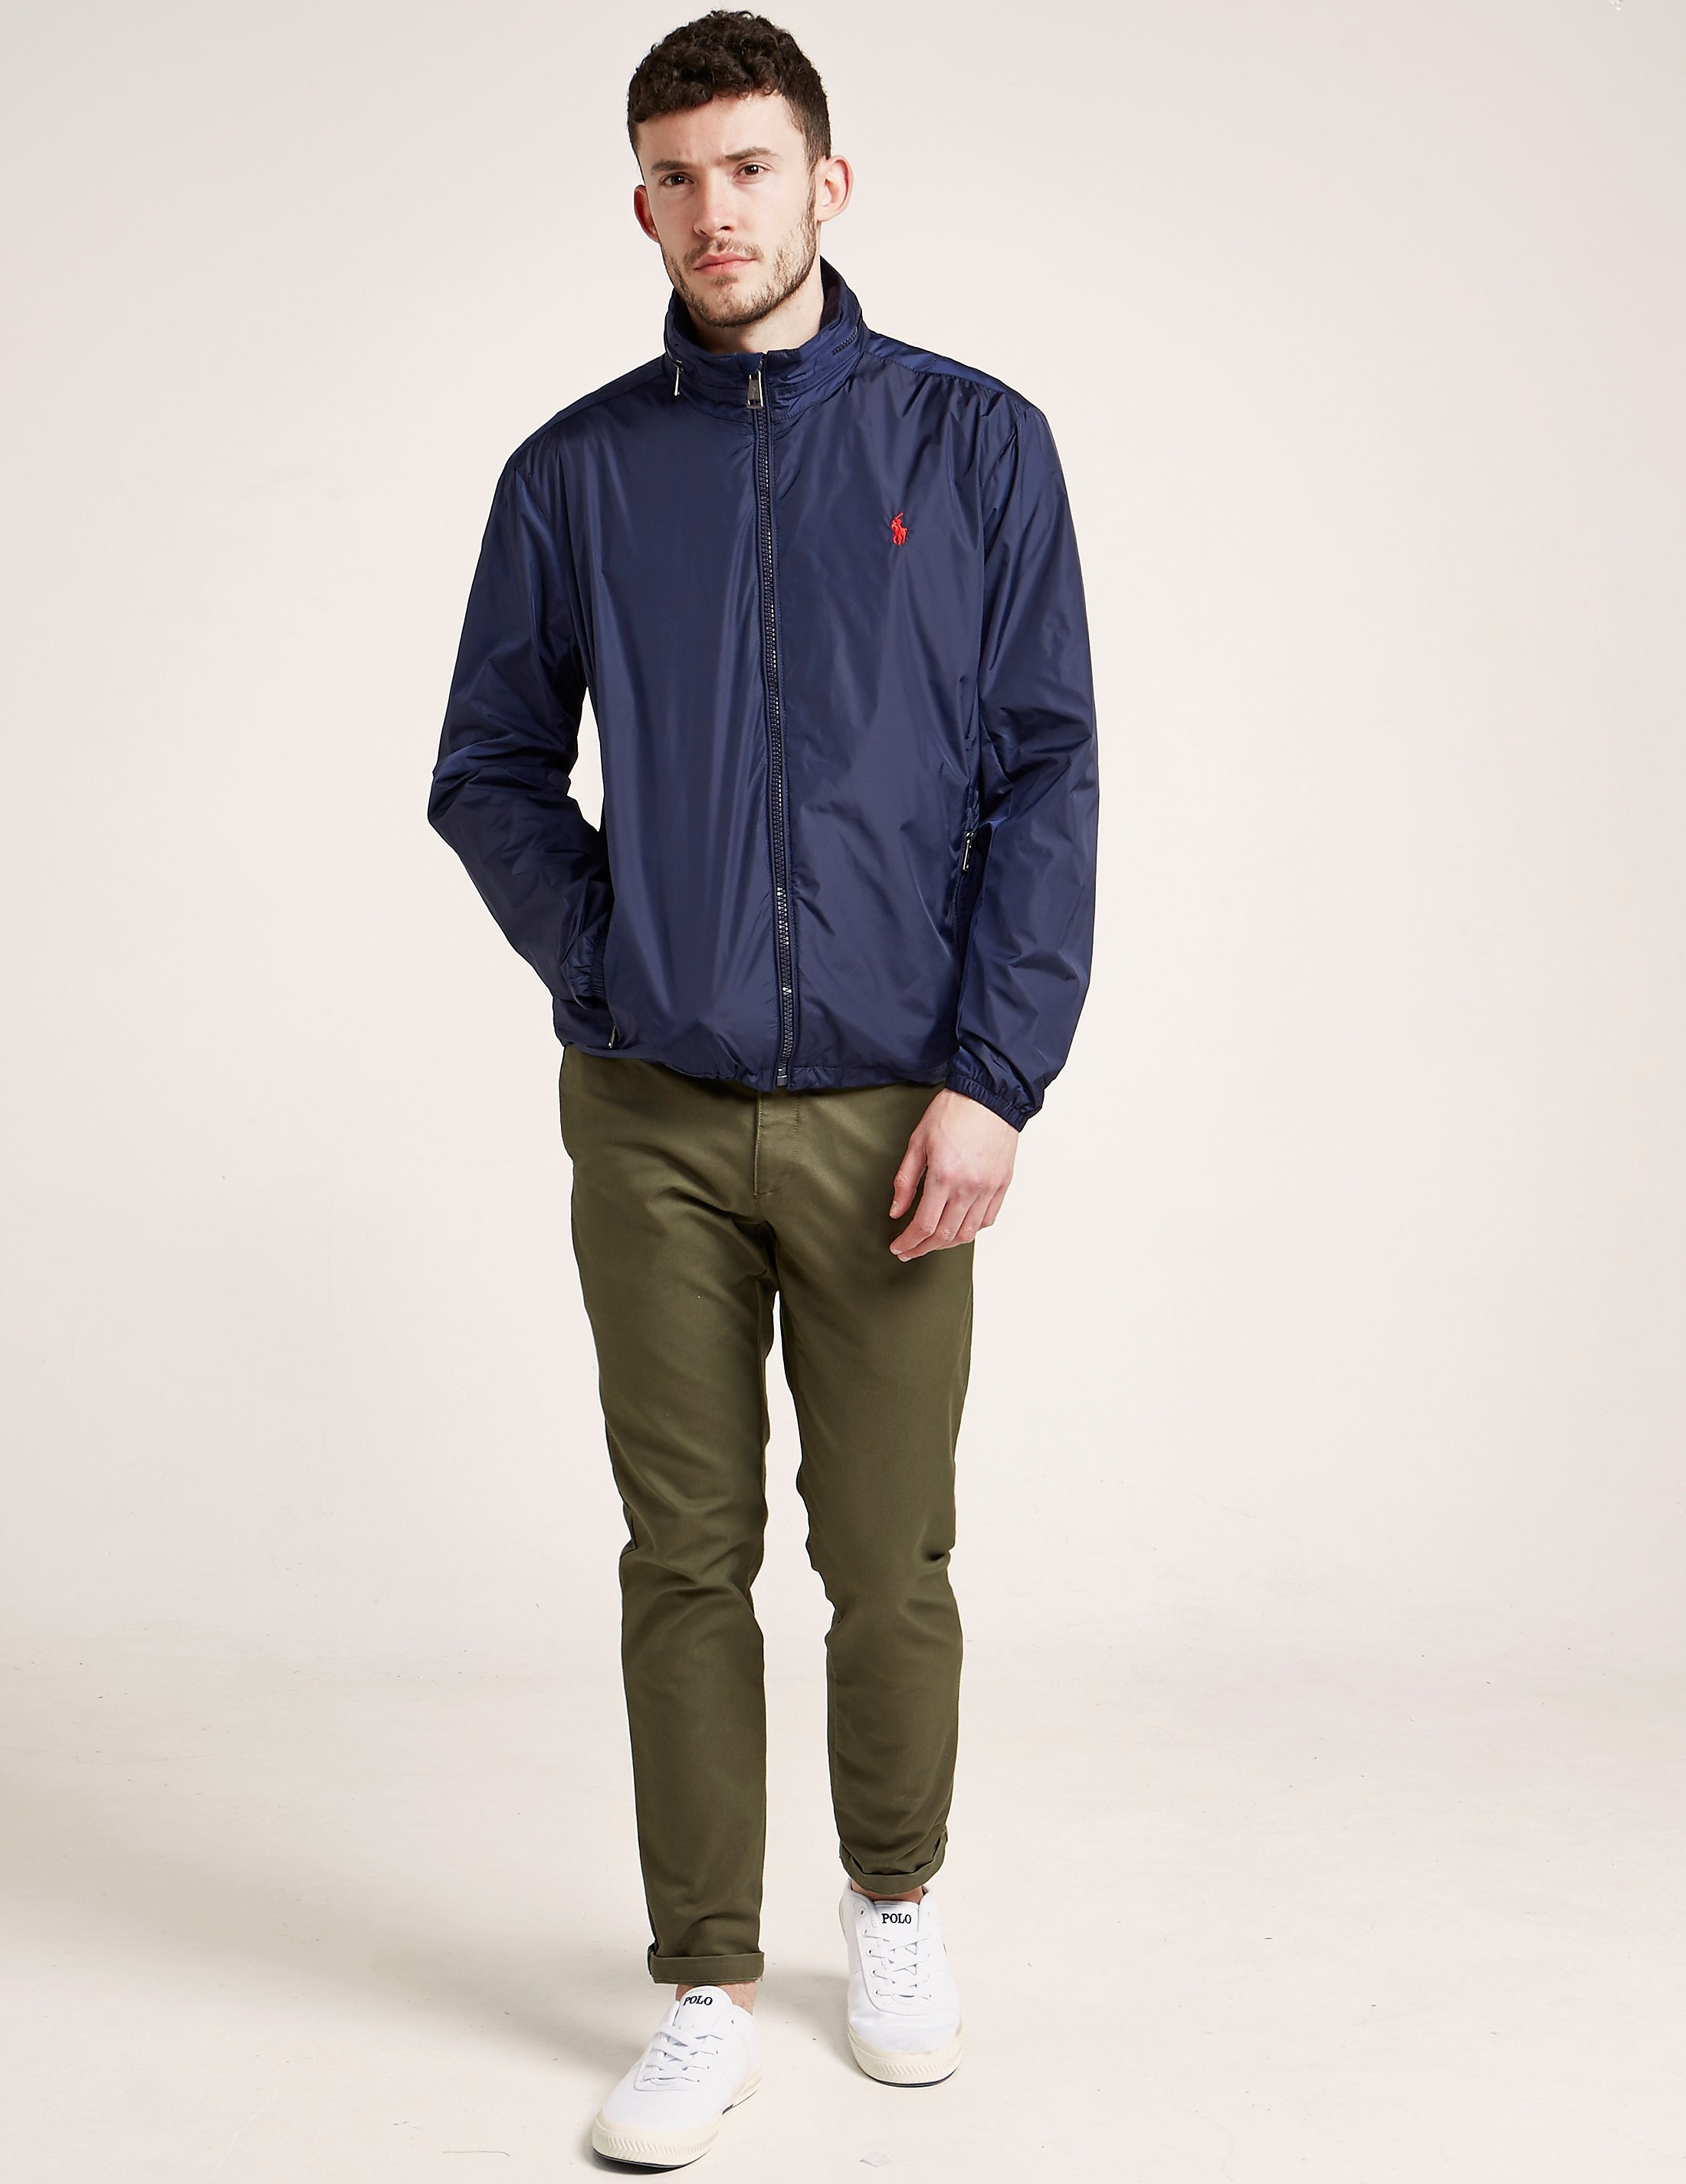 Polo Ralph Lauren Lined Jacket